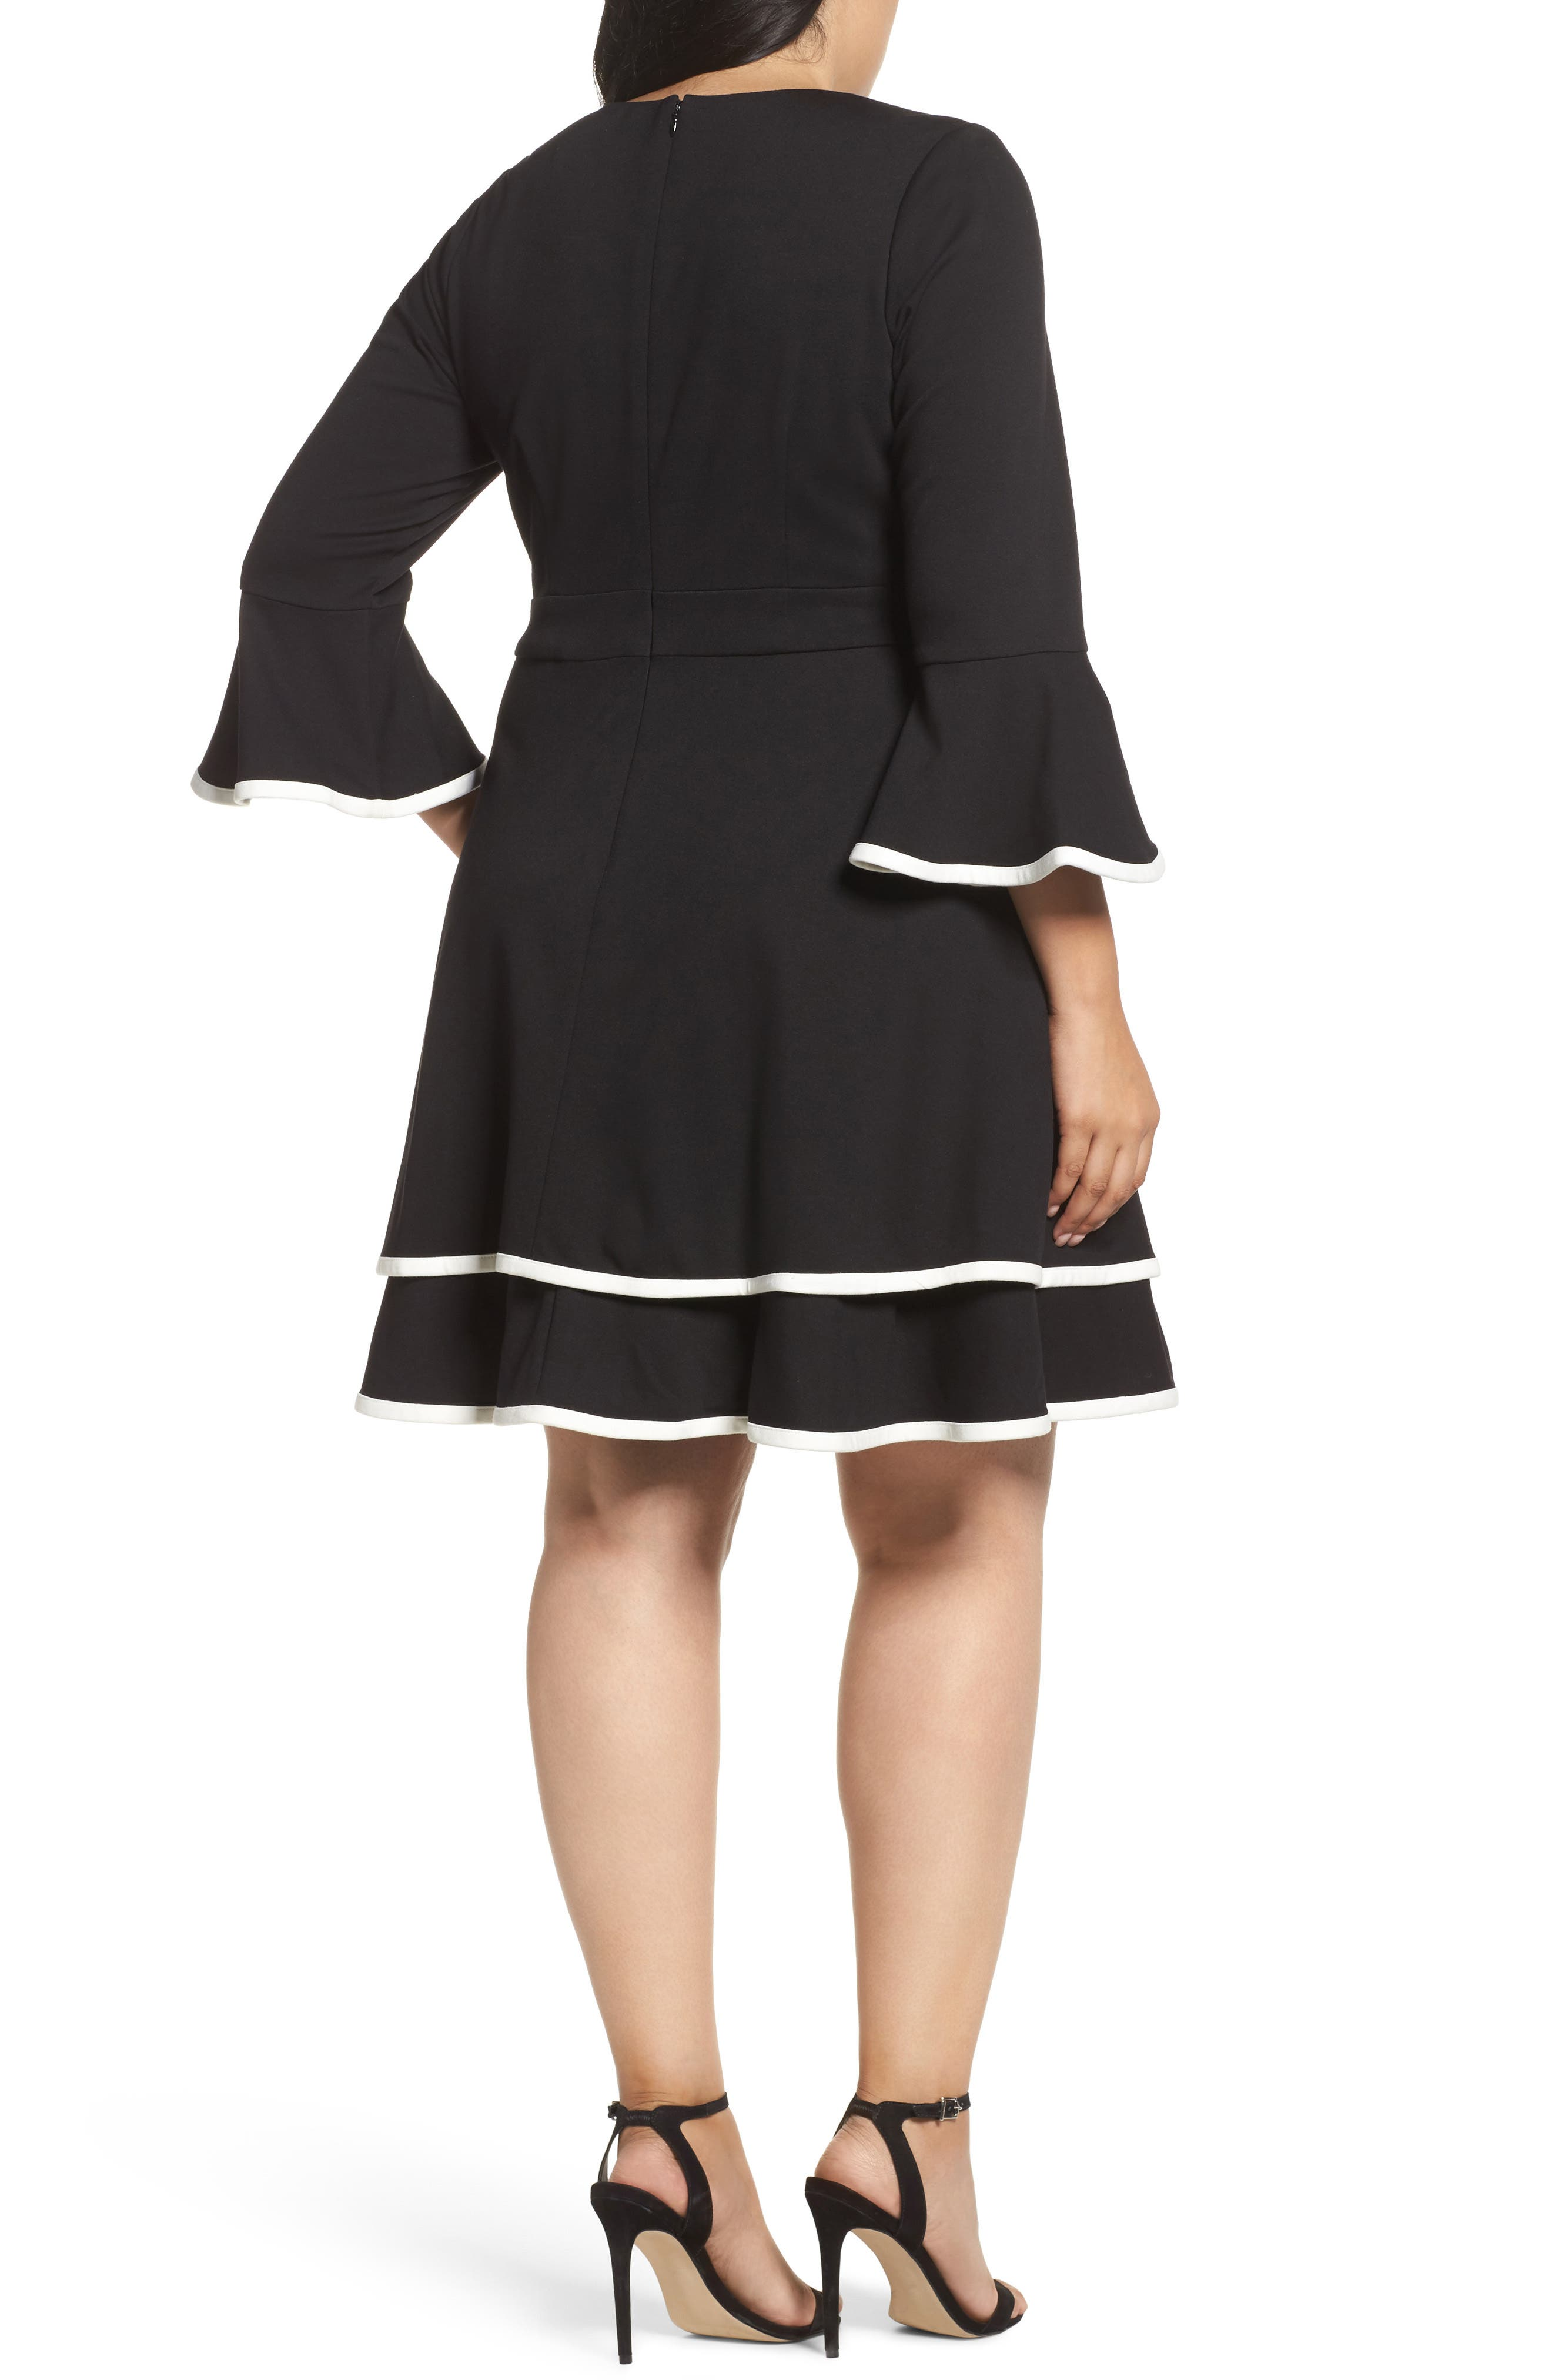 ELIZA J, Bell Sleeve Tiered Fit & Flare Dress, Alternate thumbnail 2, color, 003